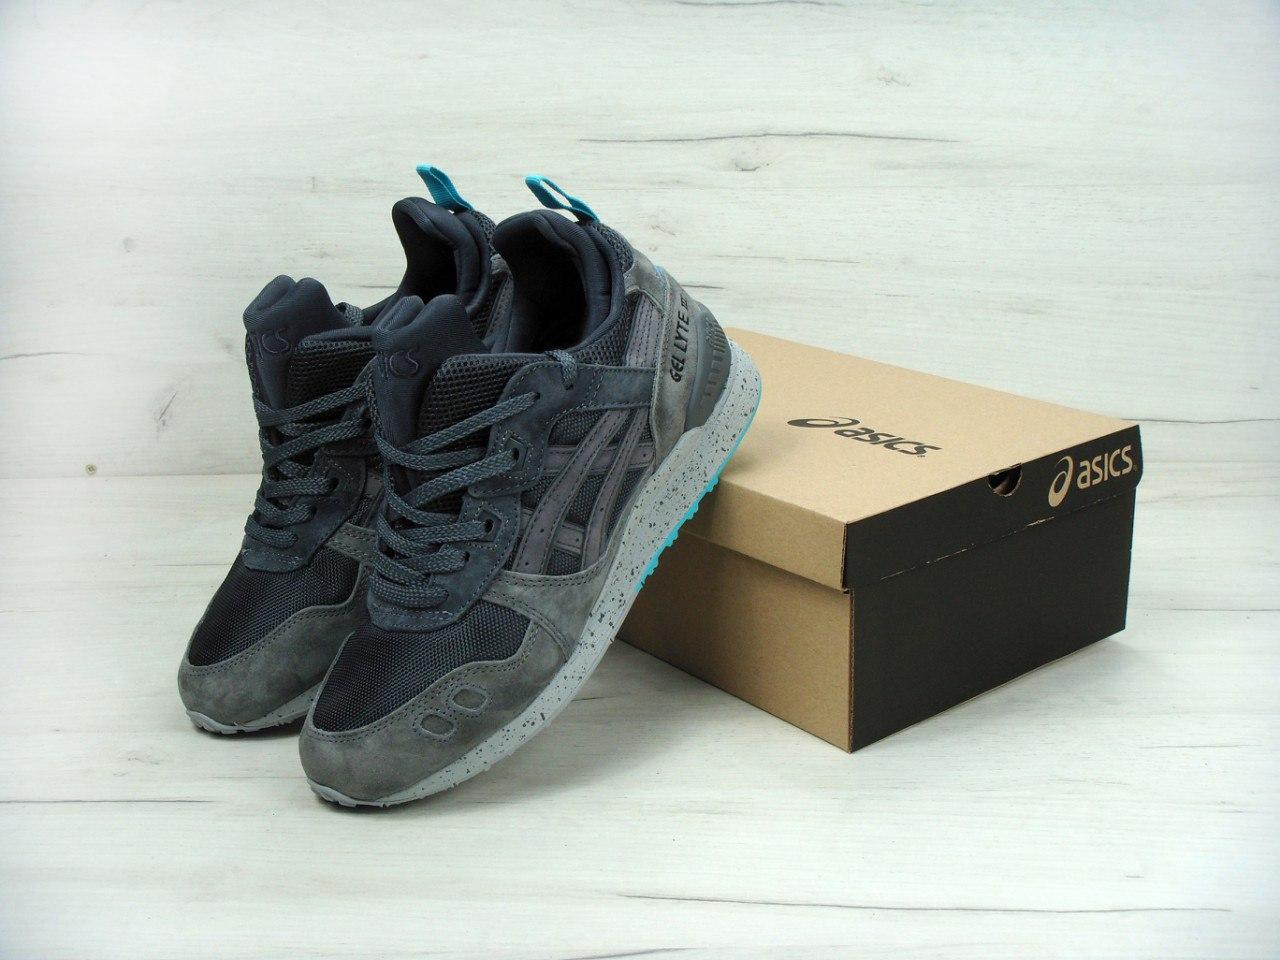 0c8e73f14b85 Кроссовки мужские Asics Gel Lyte III MT SneakerBoot Grey Grey Реплика -  Work Hard Shop